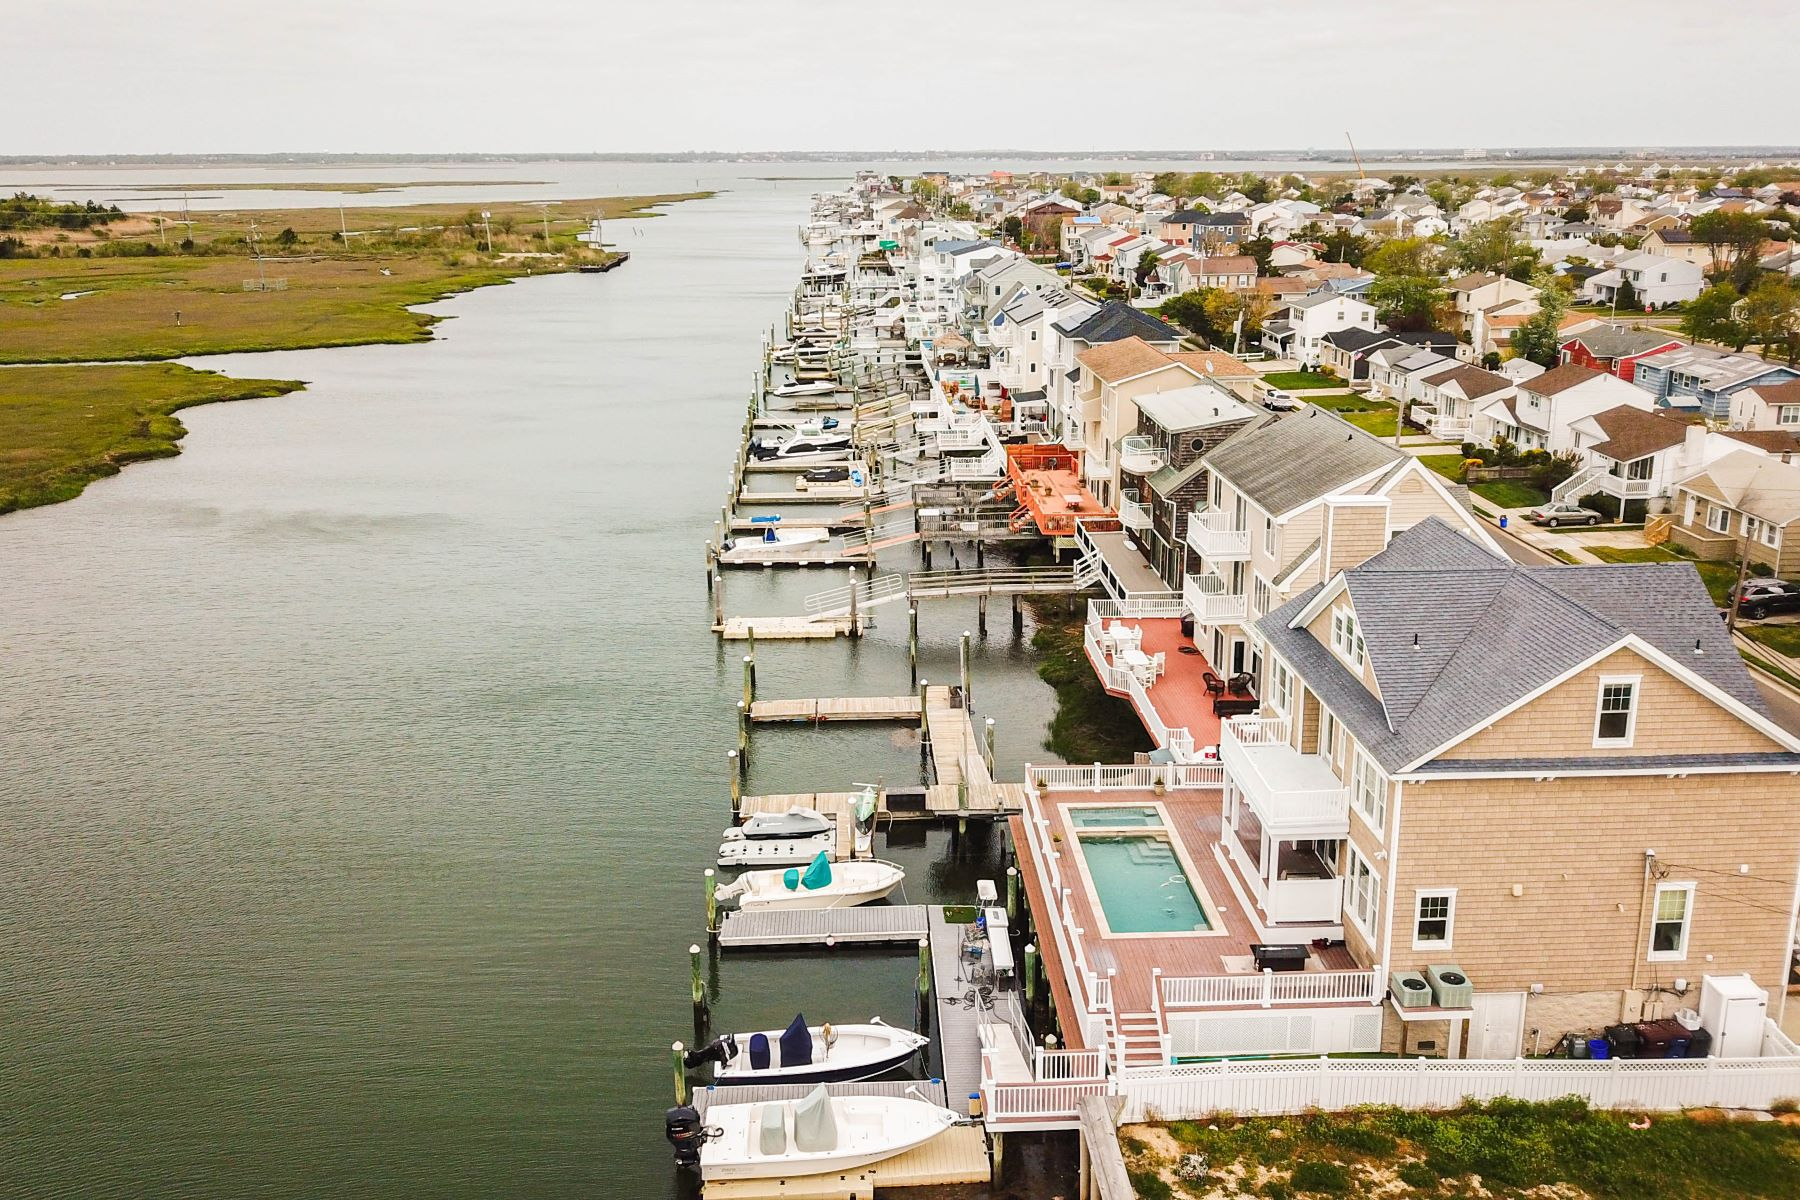 Single Family Homes for Sale at 324 N Harvard Ave Ventnor, New Jersey 08406 United States